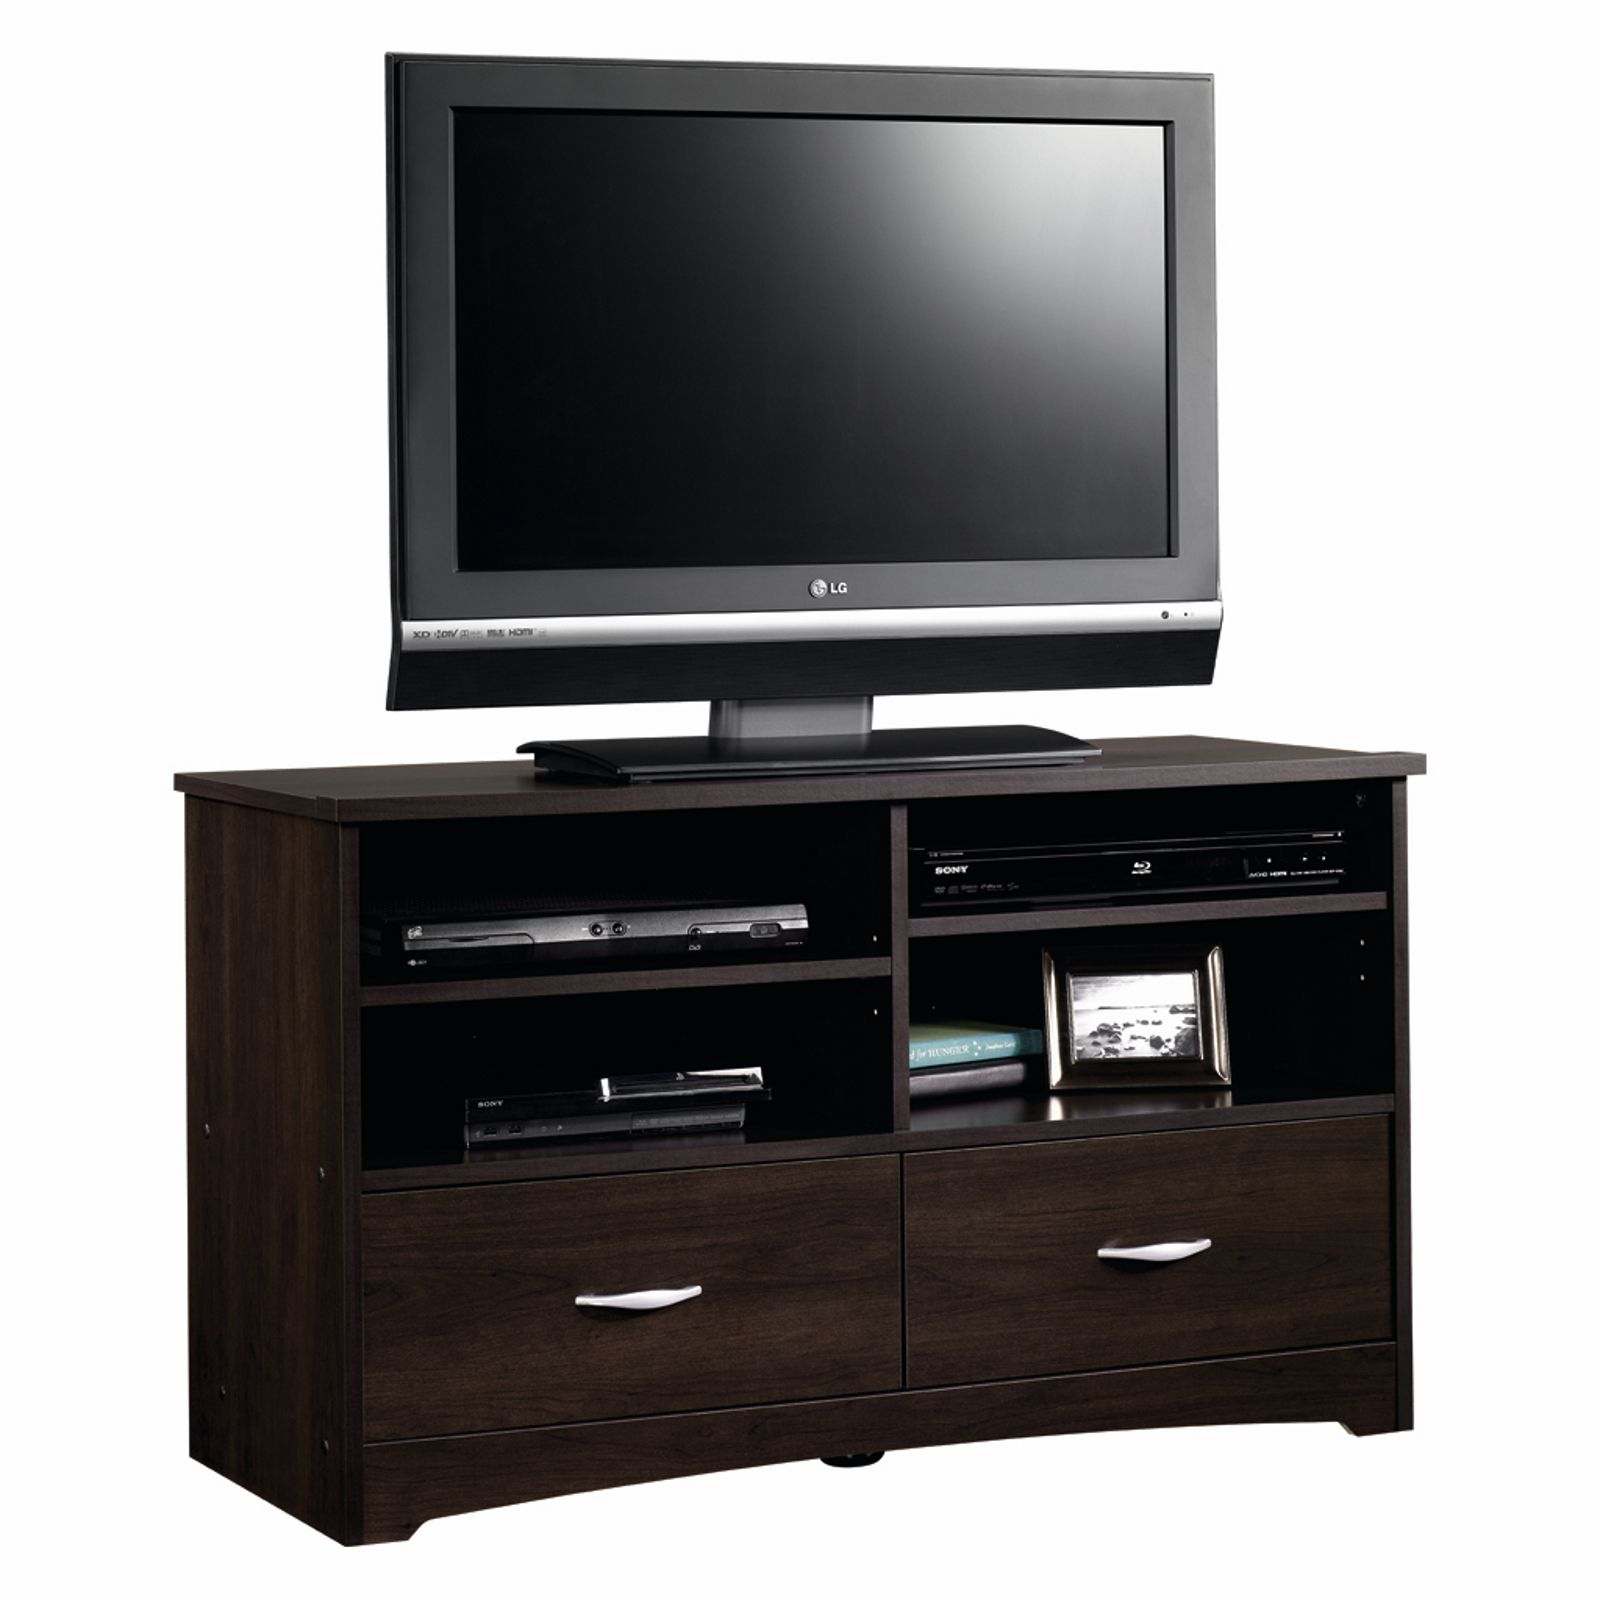 Cinnamon Cherry Tv Stand Holds Your Television Media Players And